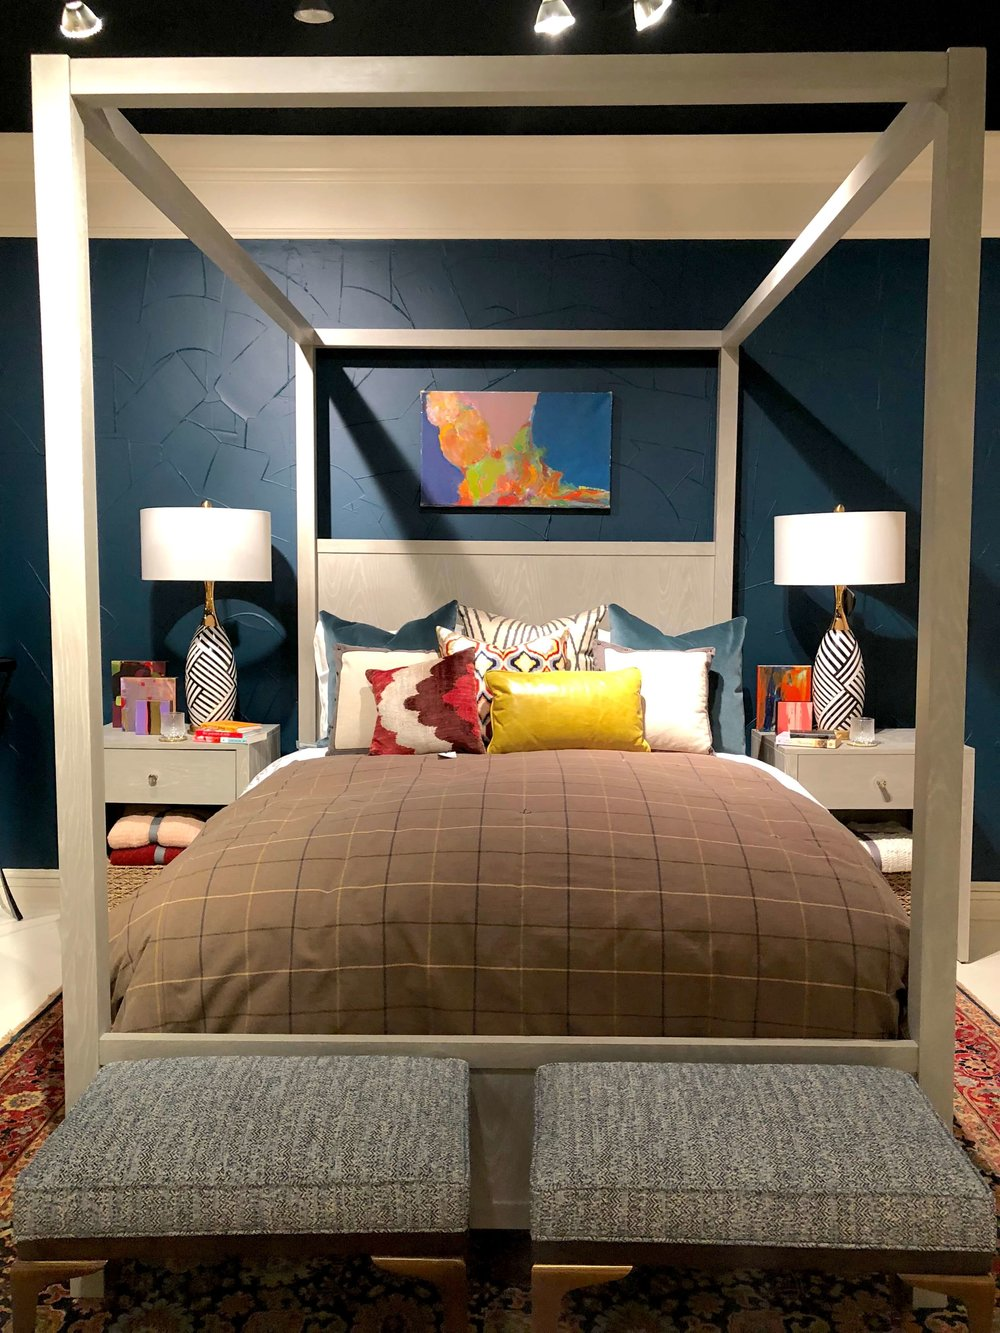 Bedroom designed by Jeanne Chung of Cozy, Stylish, Chic for Alden Parkes Showroom #hpmkt #bedroomdesign #bedroom #fourposterbed